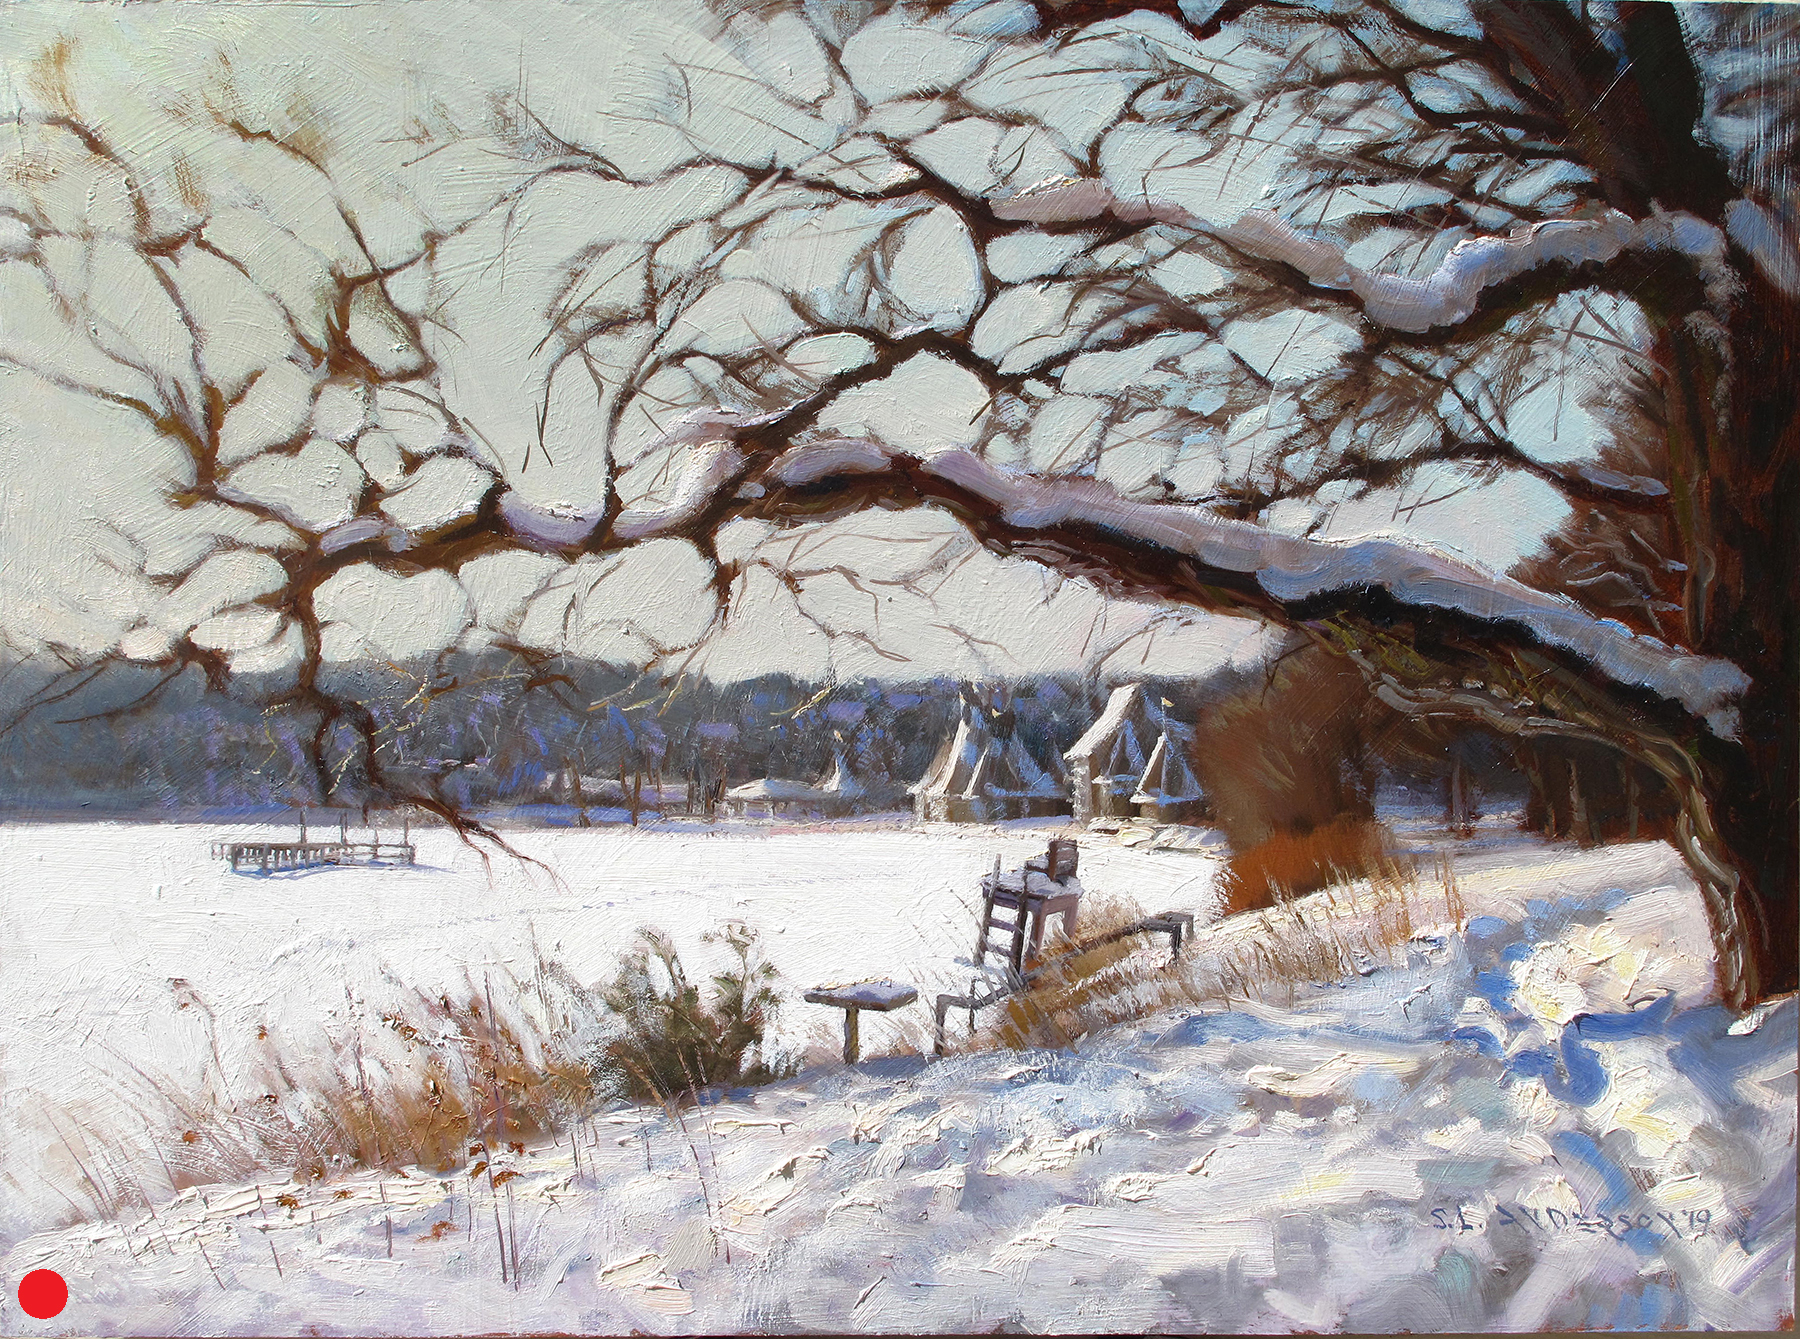 Lake Harriet View From North Beach   (SOLD) 18 x 24 oil on panel  Studio painting from a small 8 x 10 panel created on location. I had to sit in the snow to get the bandshell to fit in that window below that big branch. I got a kold keester after while. Many large branches cantilever from the trees oddly out across the walking path.